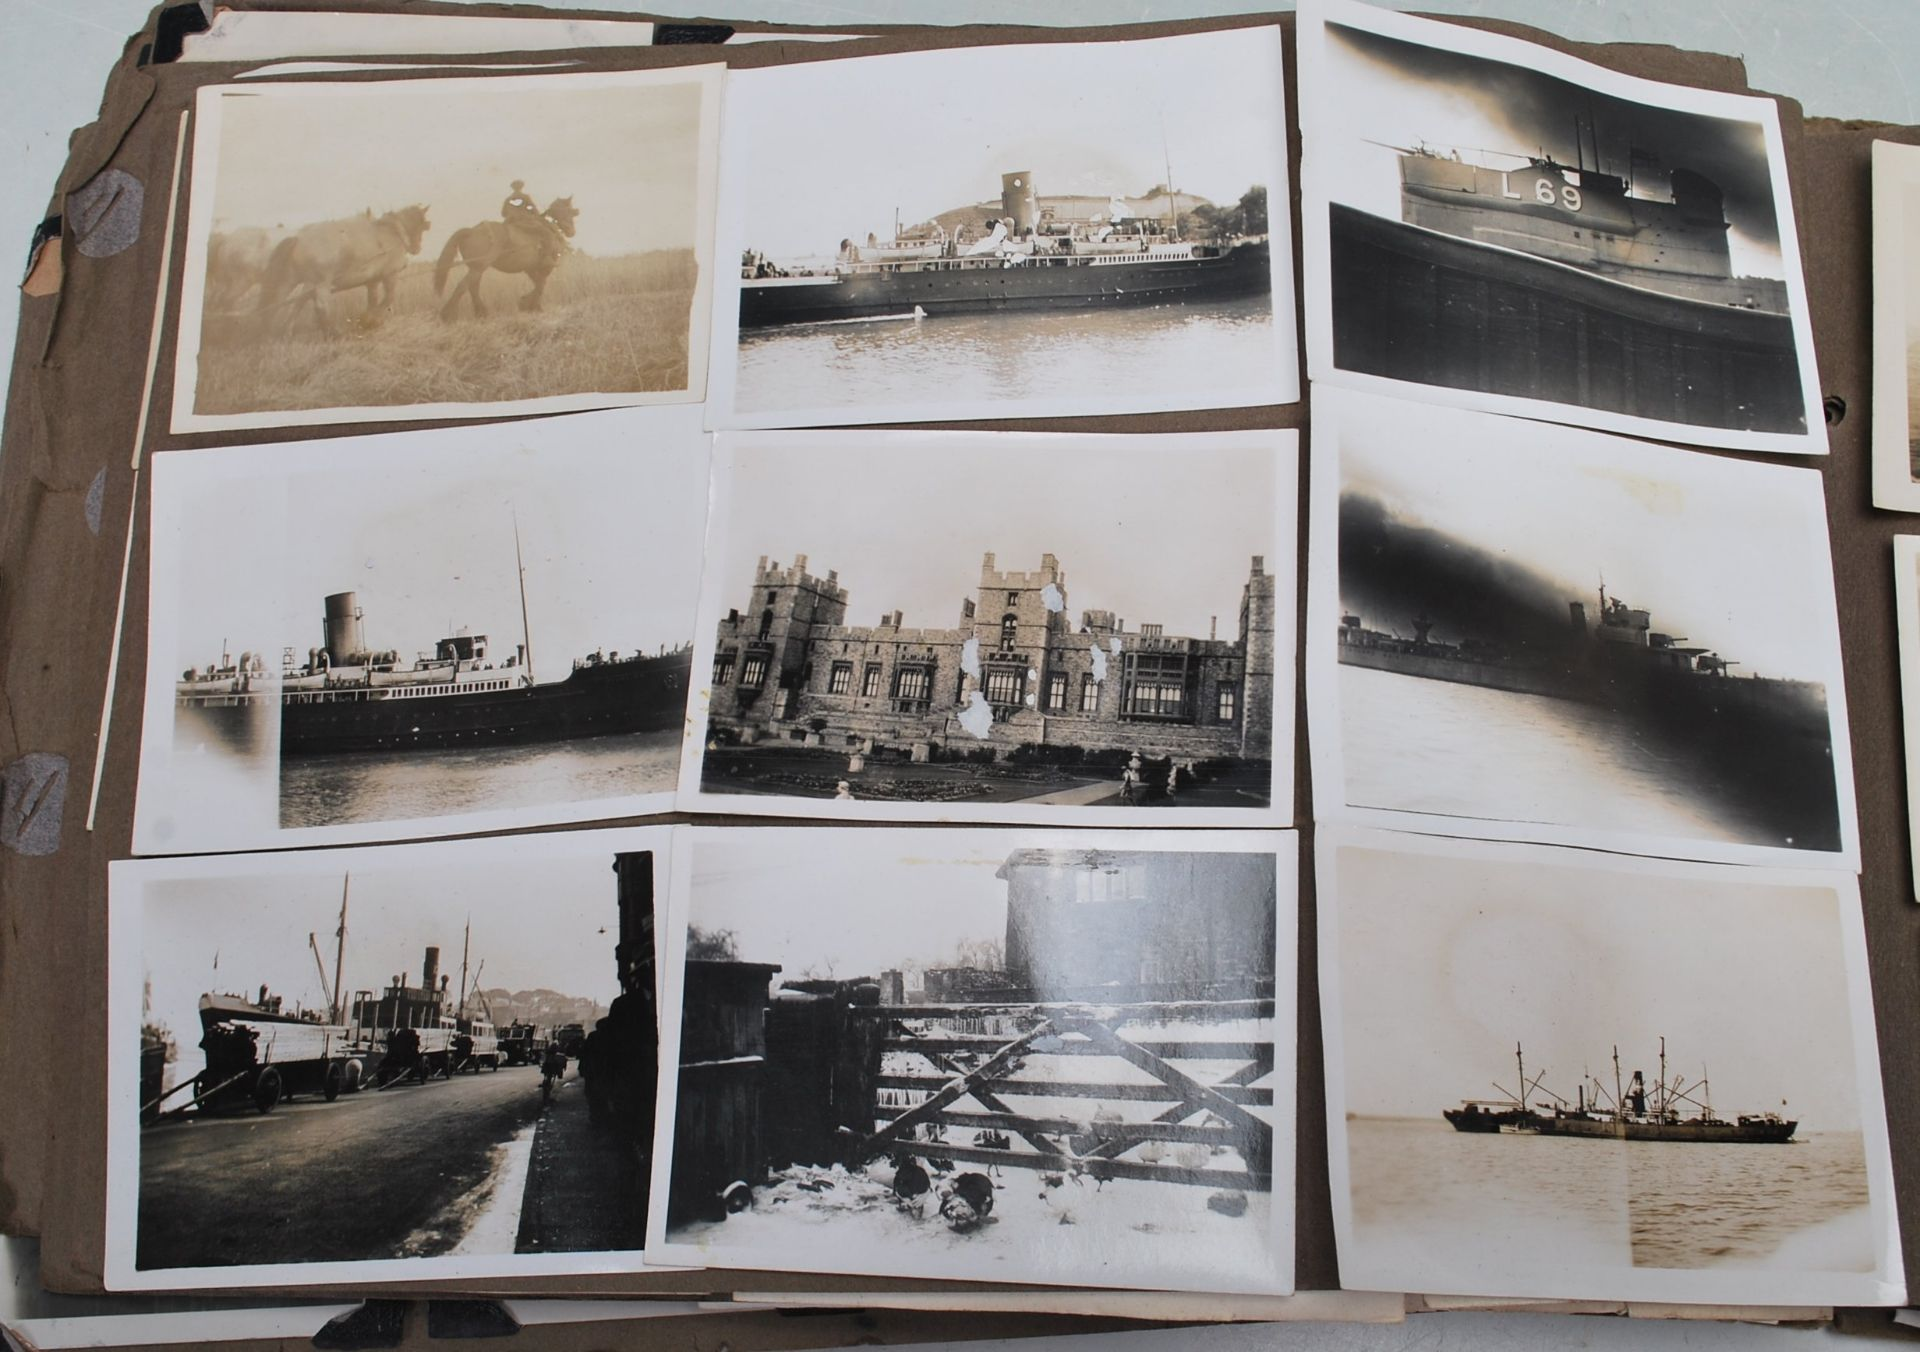 EARLY 20TH CENTURY BLACK AND WHITE PHOTO ALBUM - Image 11 of 14